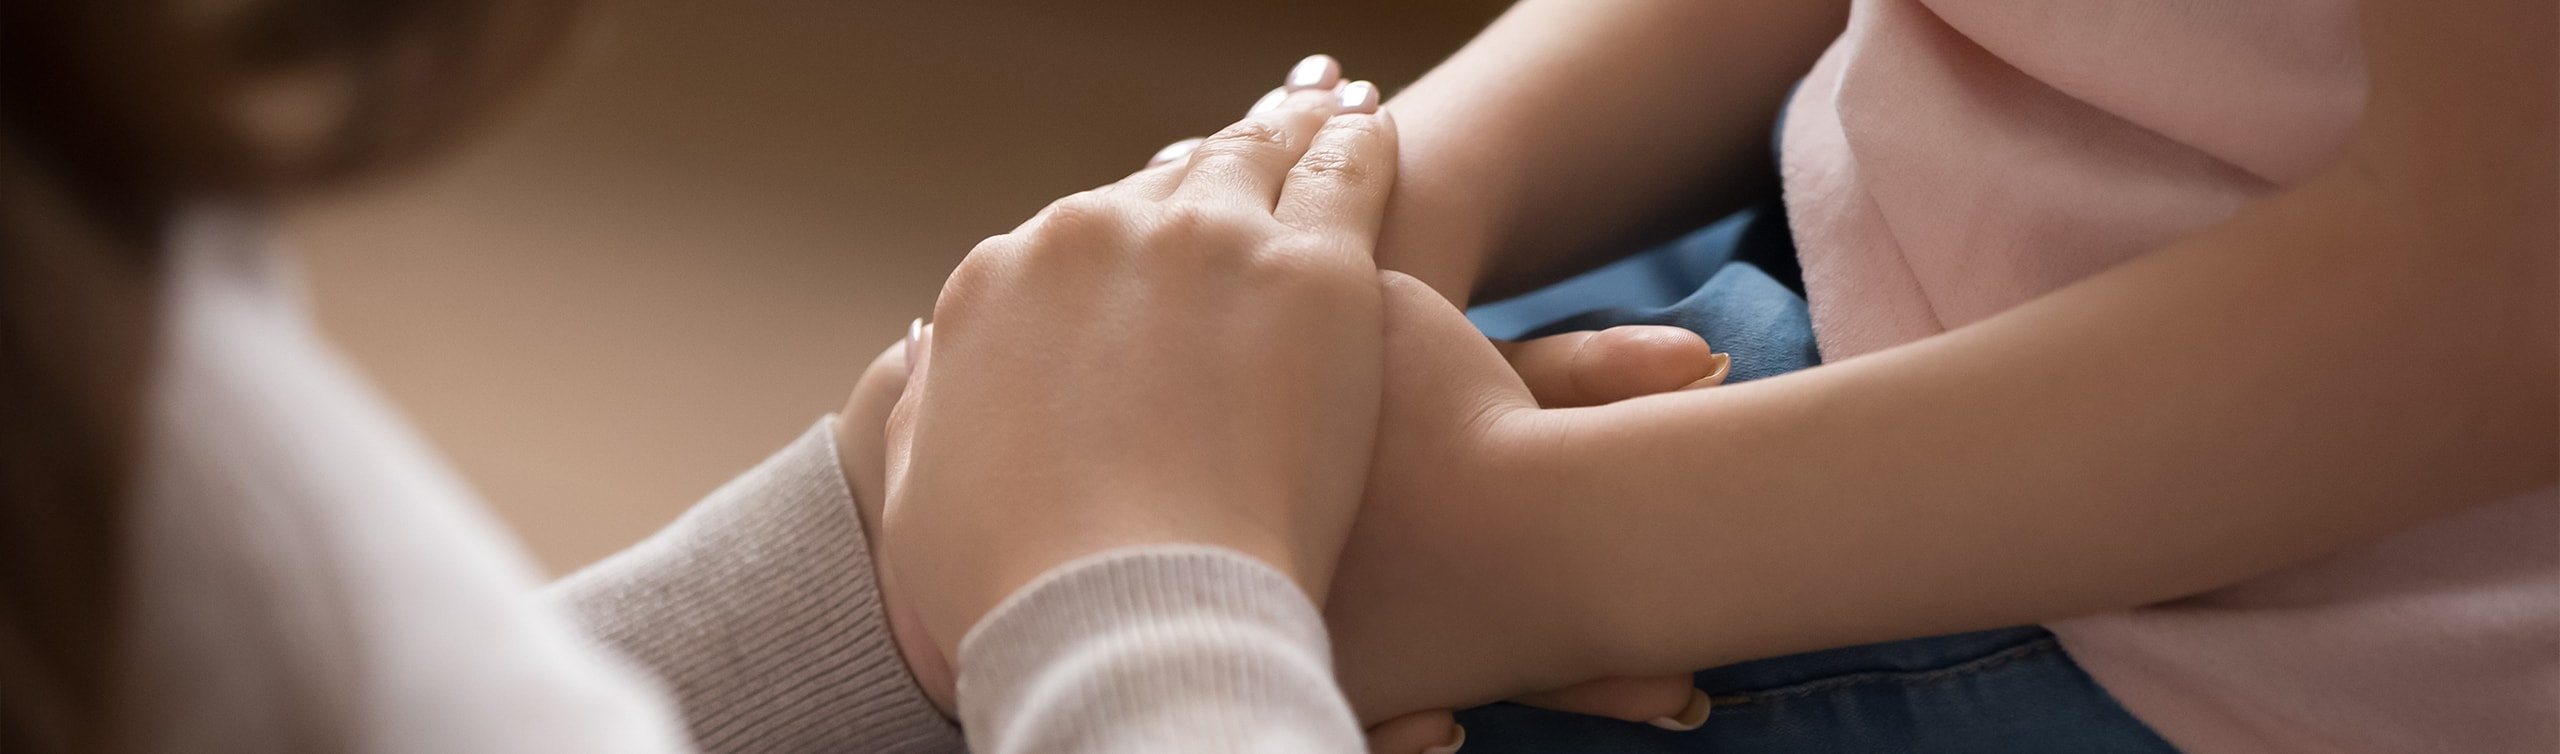 legal guardian comforts child by holding hands